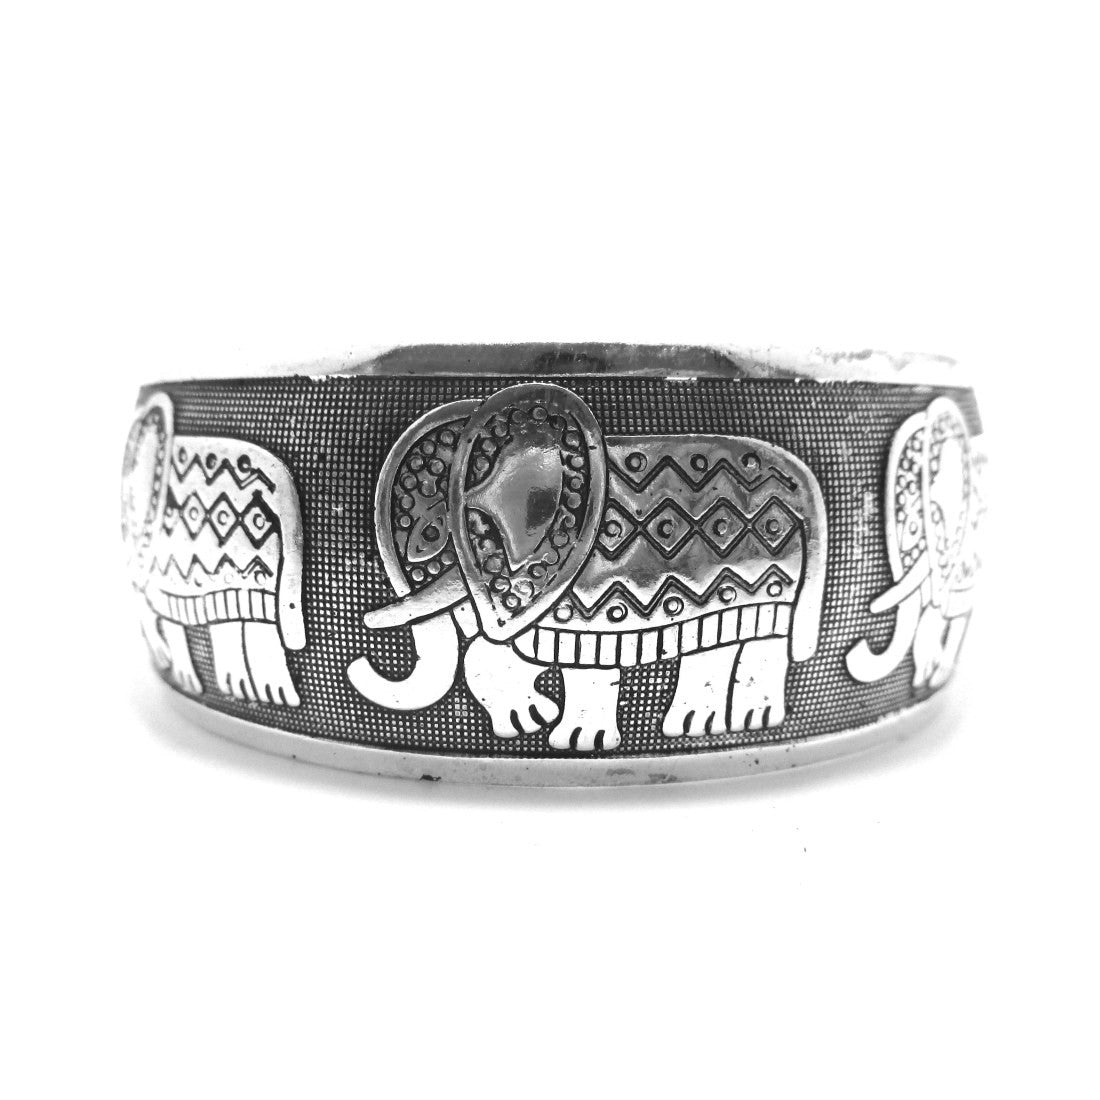 Abstract Elephant Shaped Bangle Cuff Bracelet in Silver